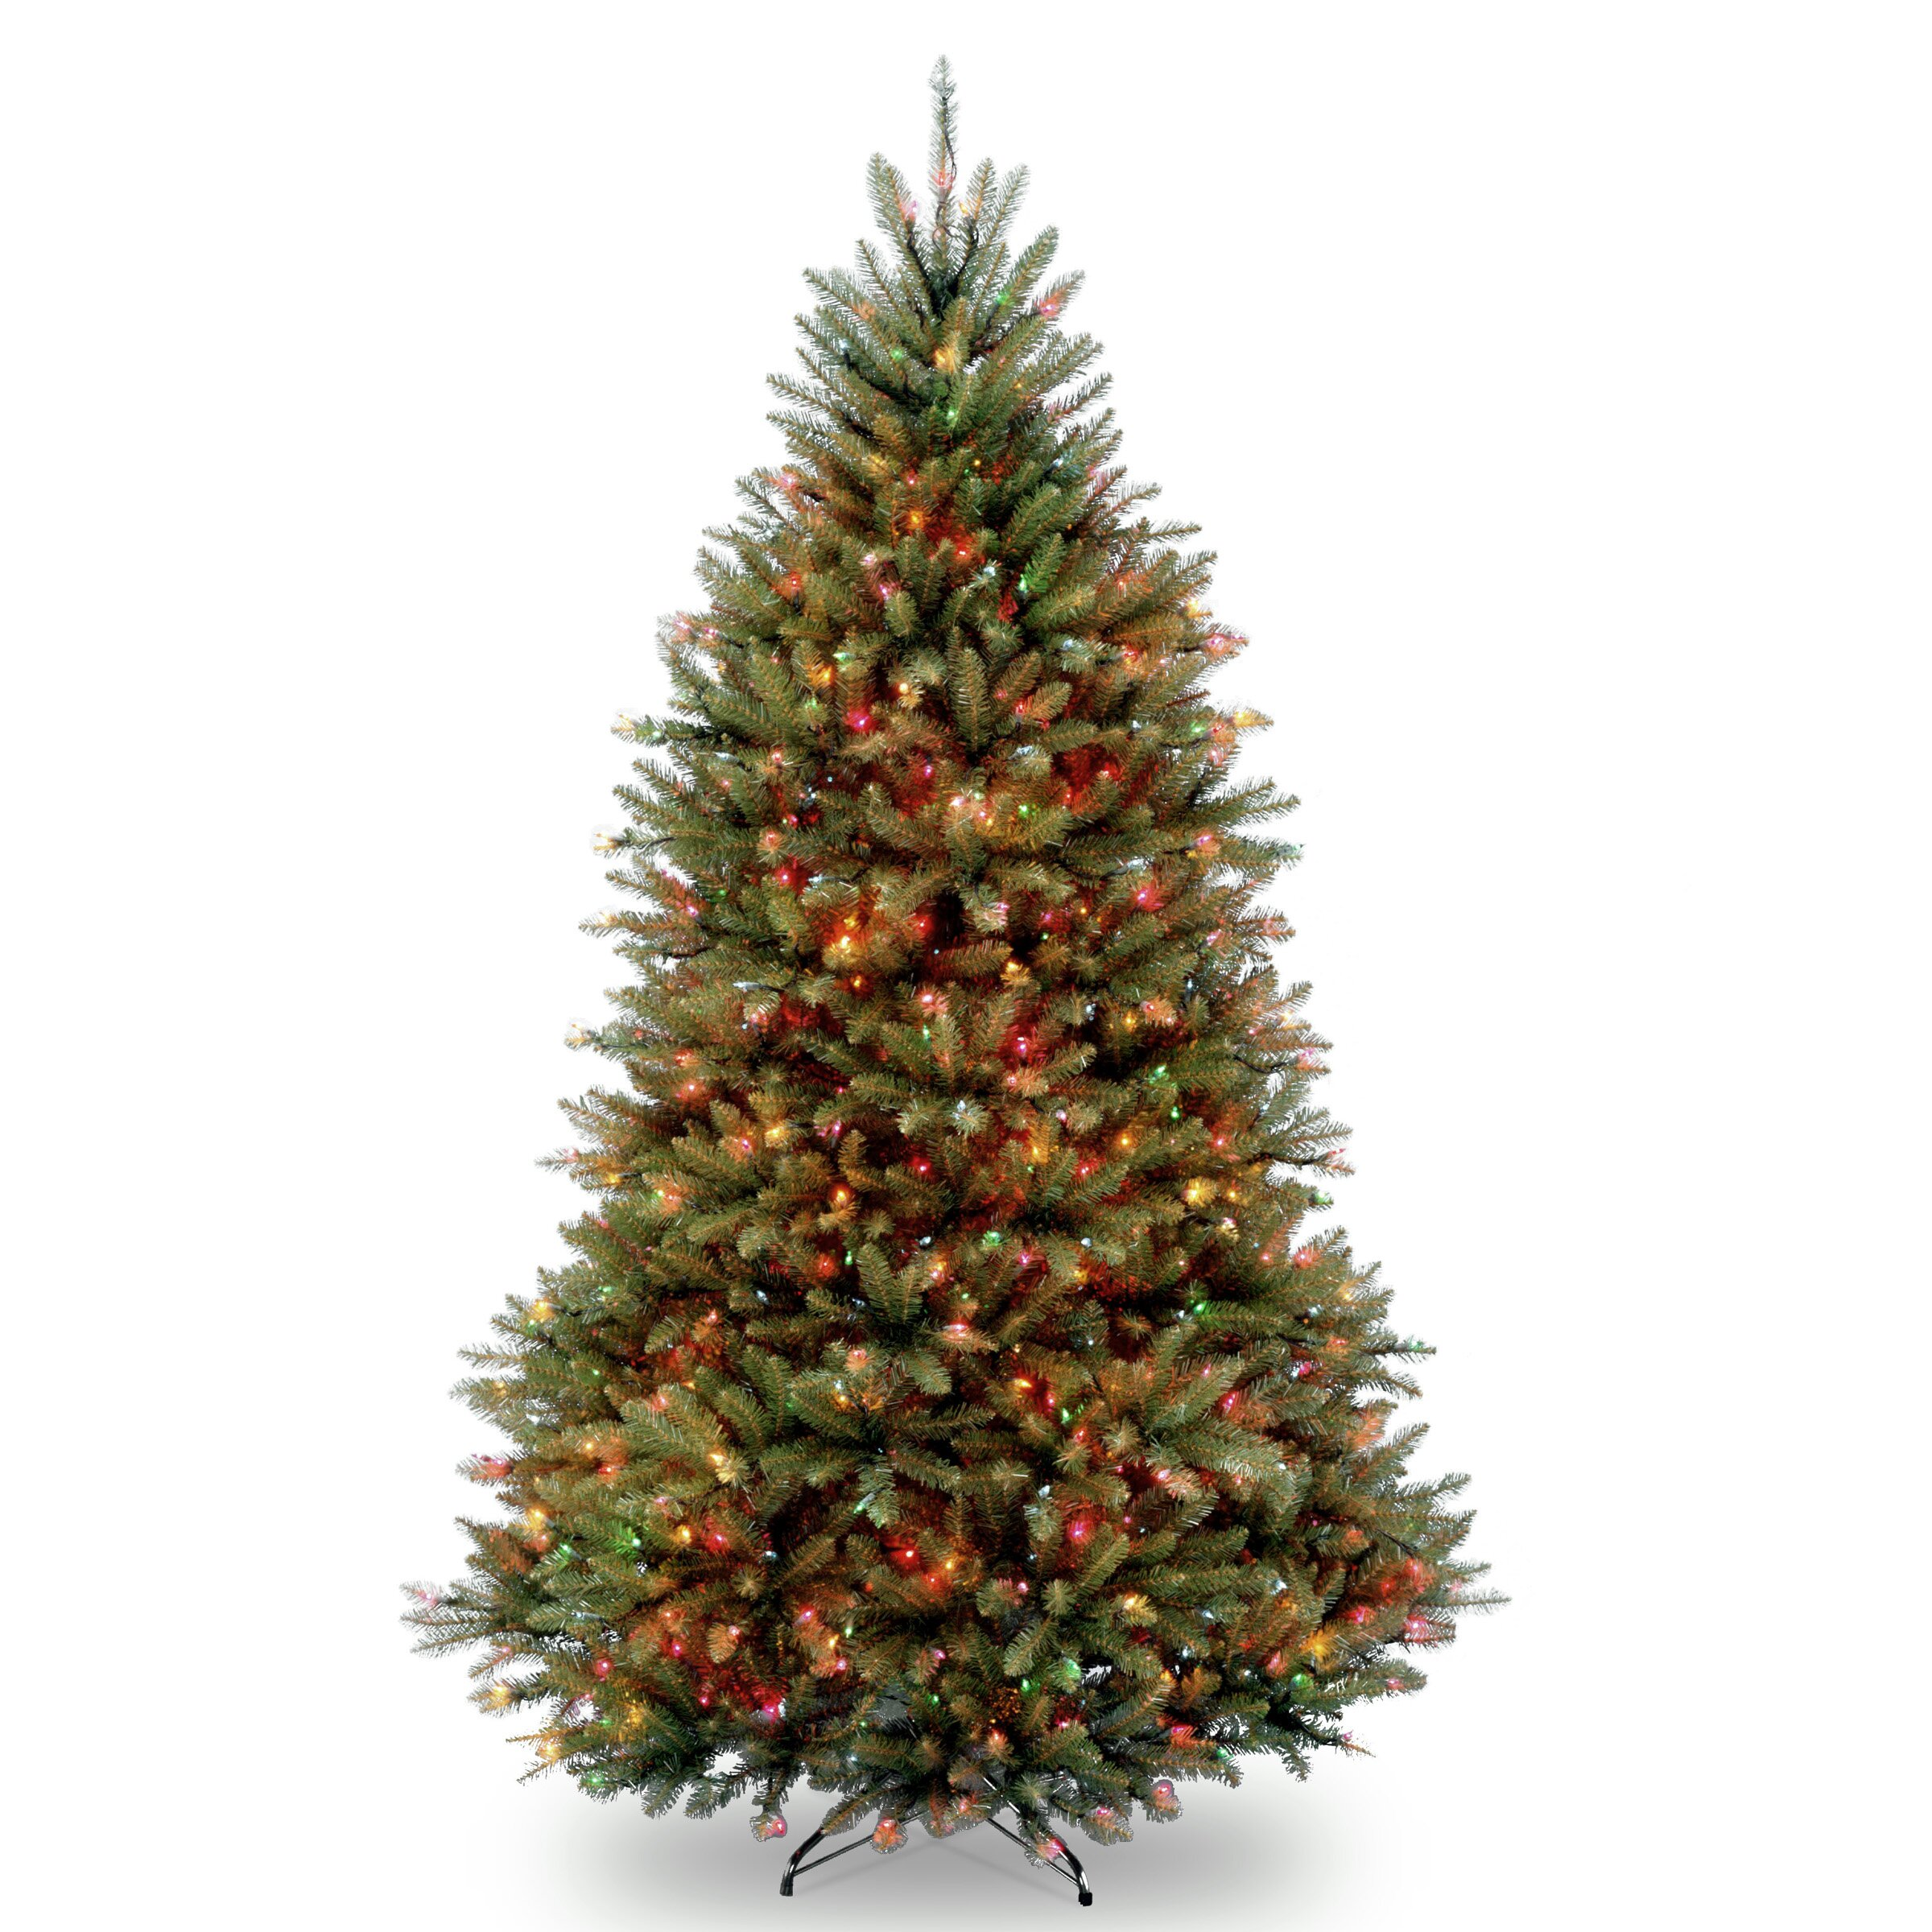 Home Depot Real Christmas Tree Prices: National Tree Co. Dunhill Fir 7.5' Hinged Green Artificial